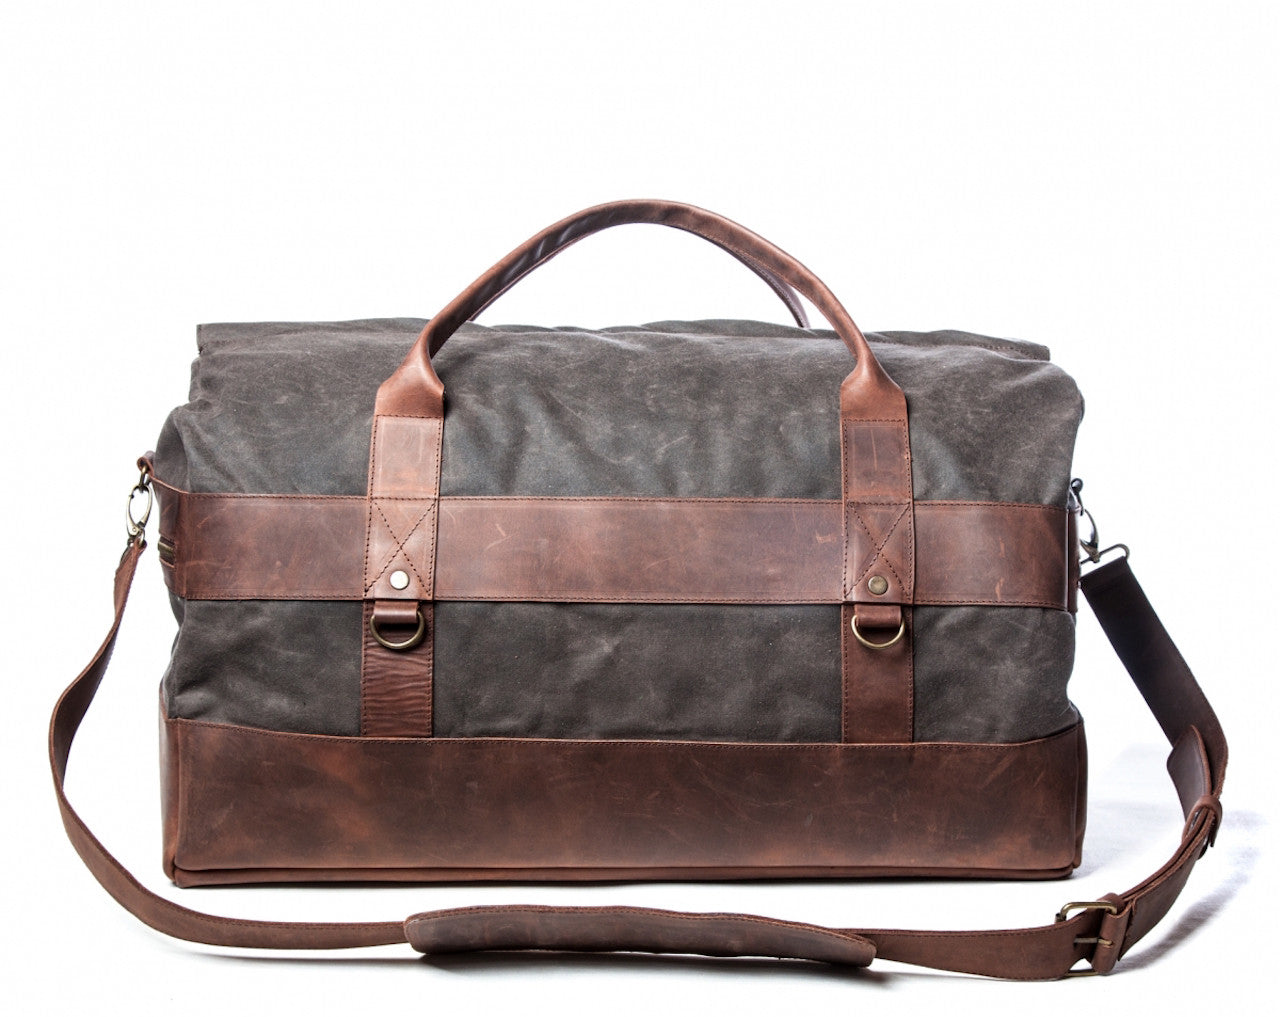 b460f9b5860 Waxed Canvas Leather Weekender Duffel Bag for Men & Women - Gray w/ Brown